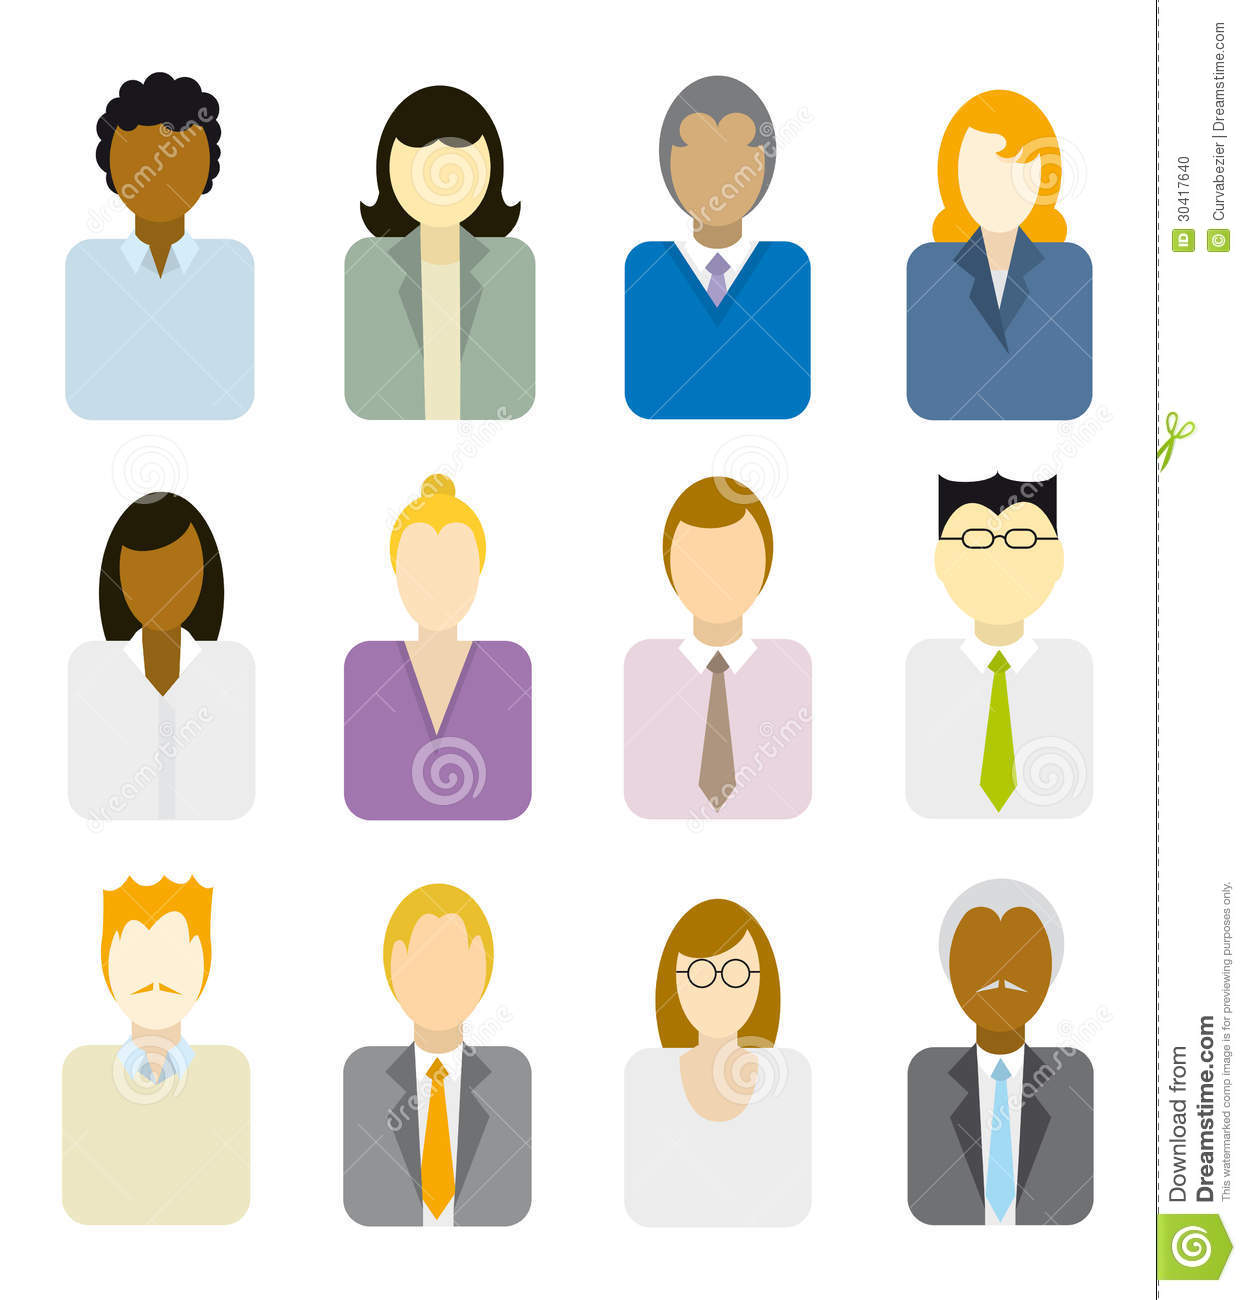 Business People Icons Stock Photo - Image: 30417640